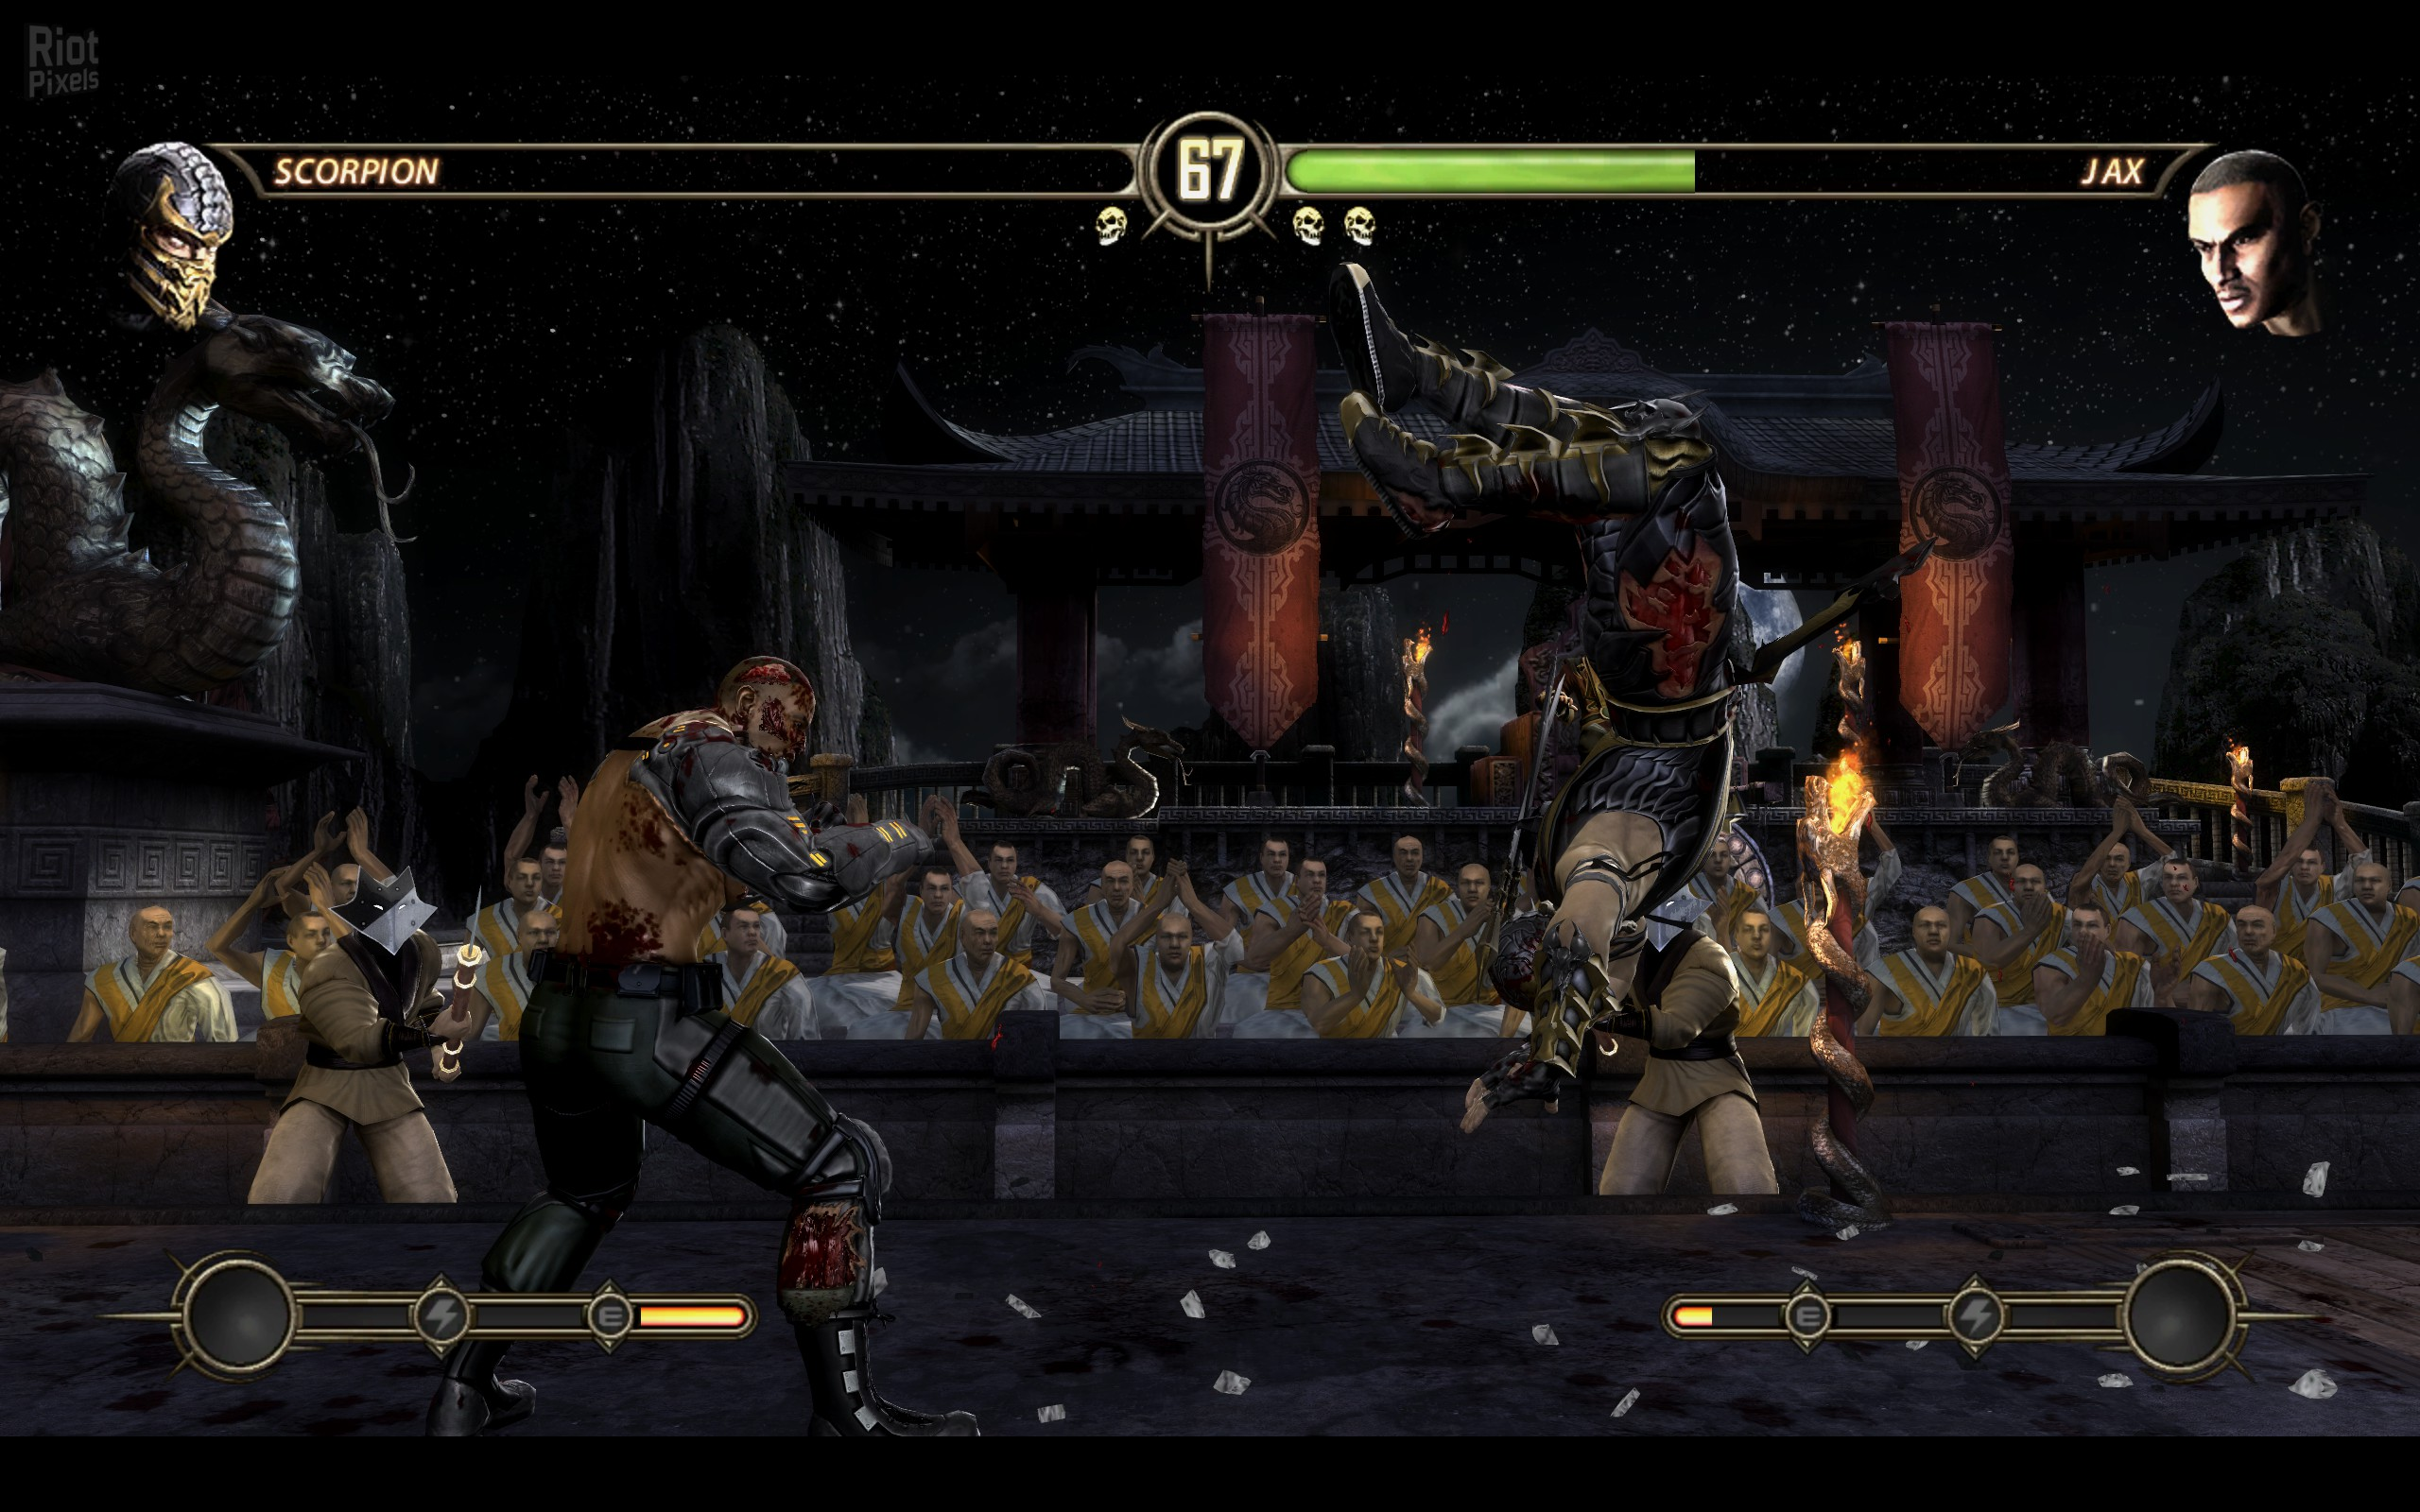 Mortal kombat komplete edition pc patch pron pic